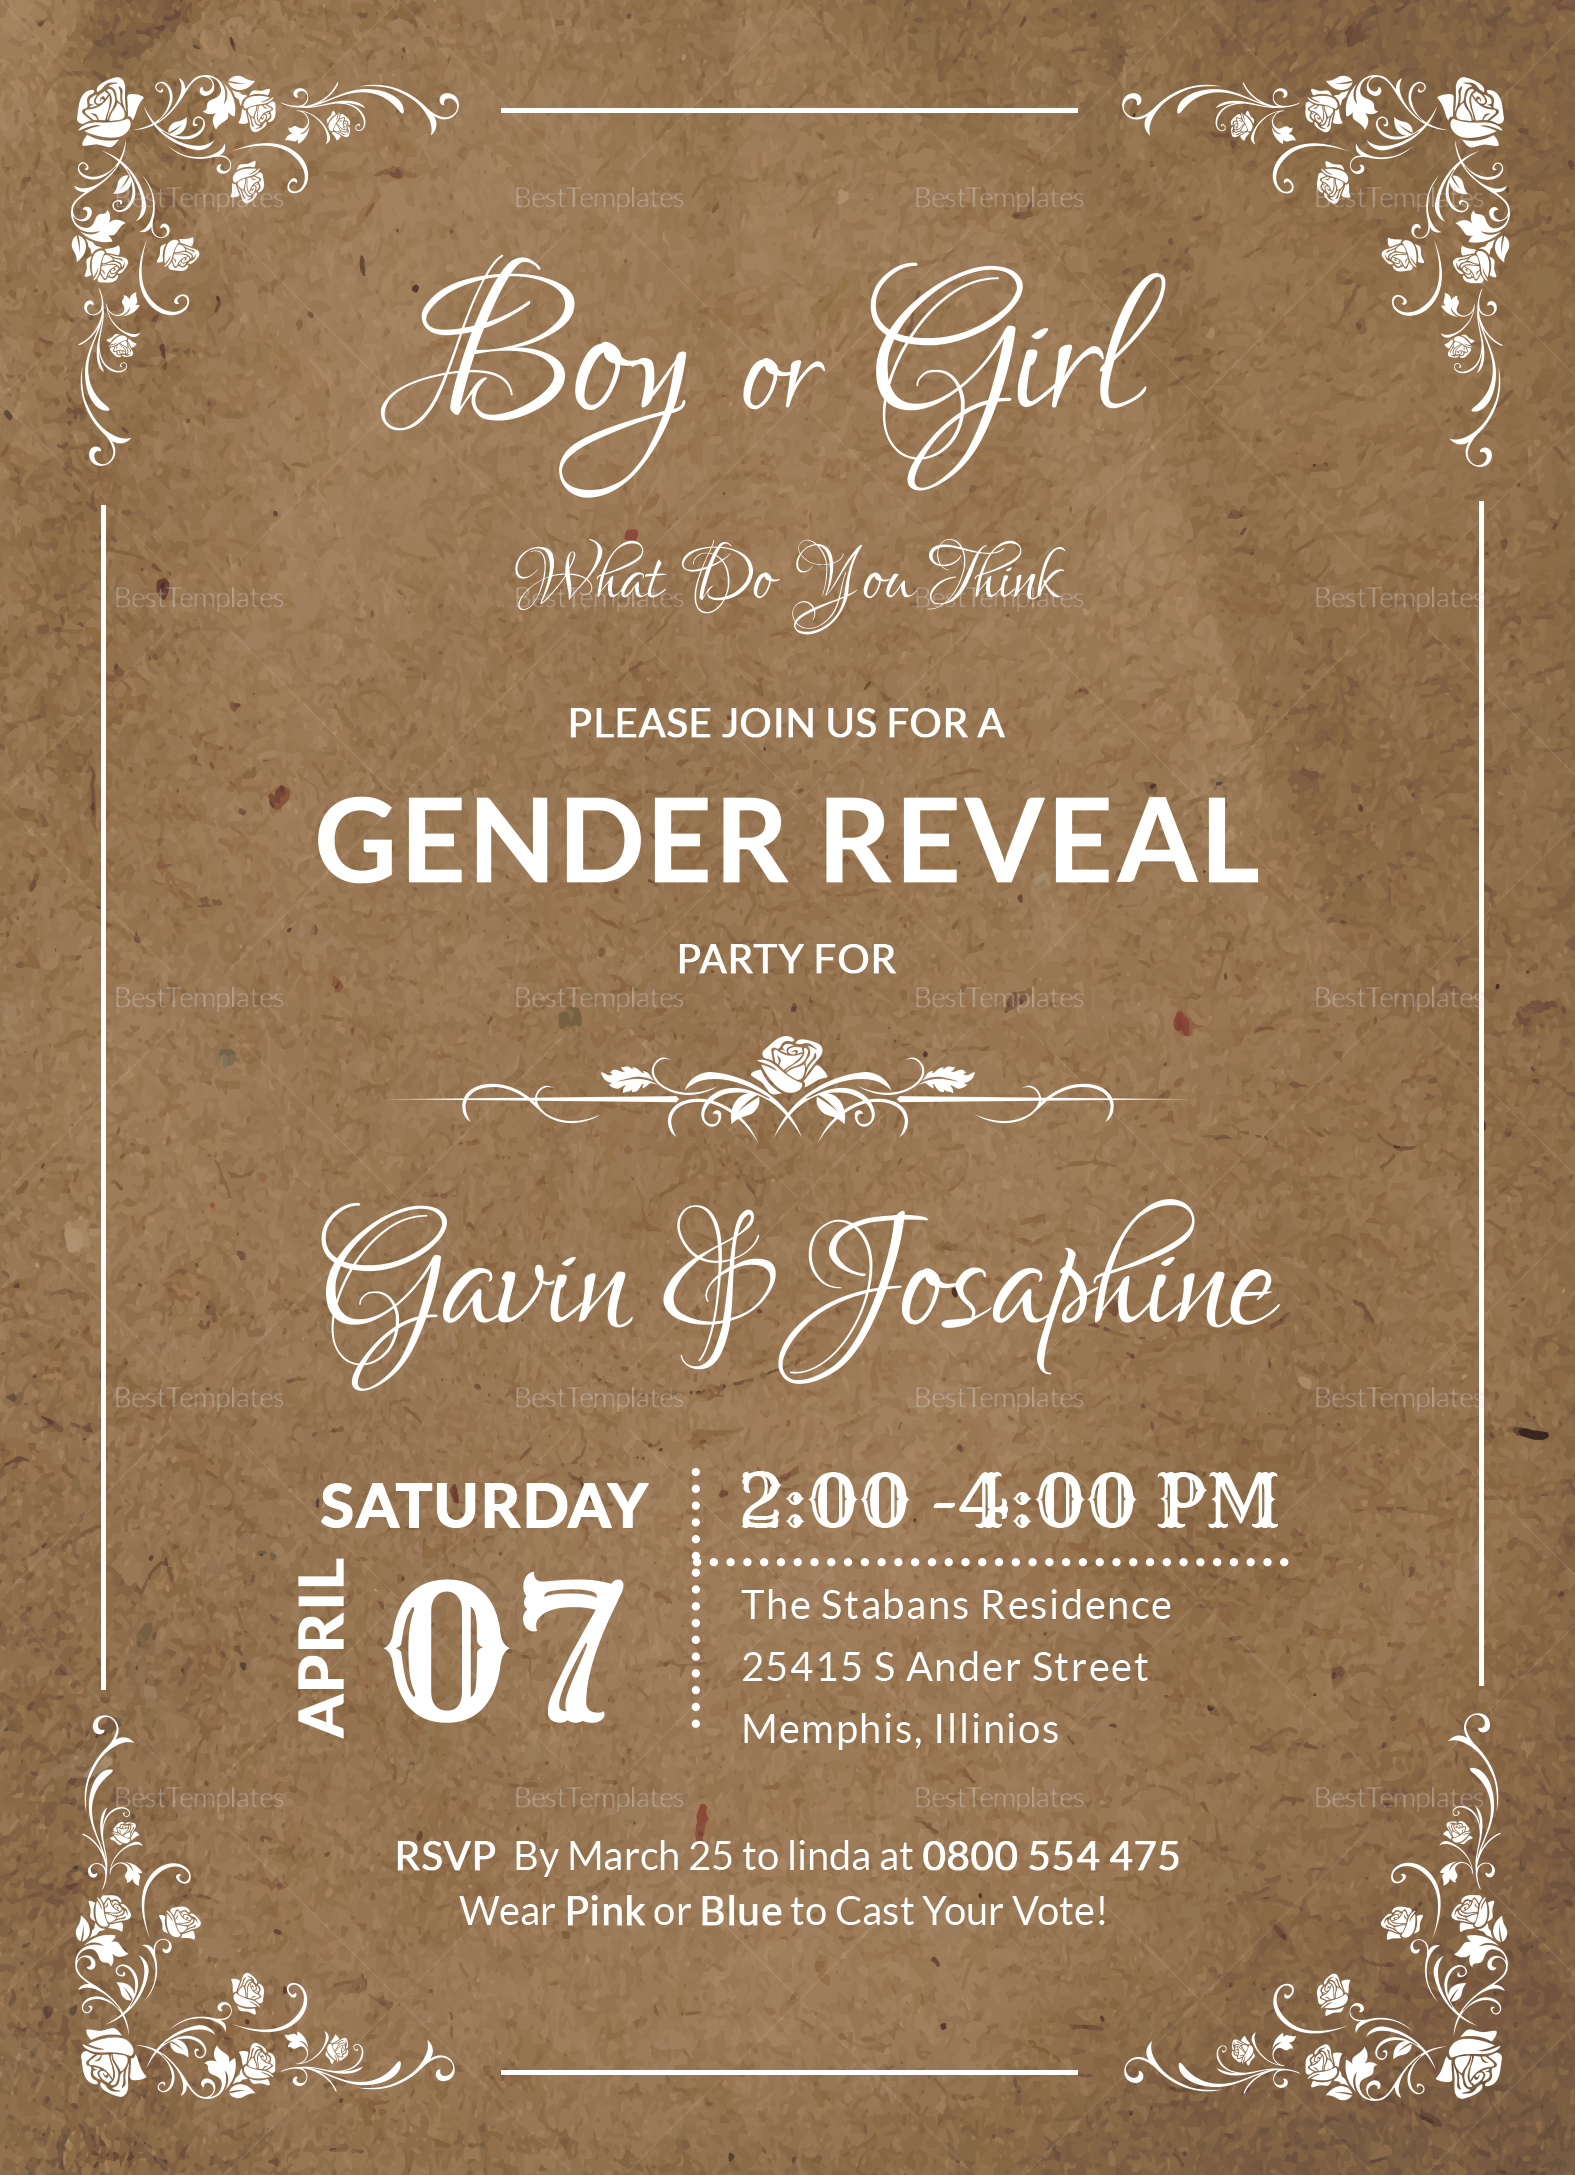 Gender Reveal Party Invitation Design